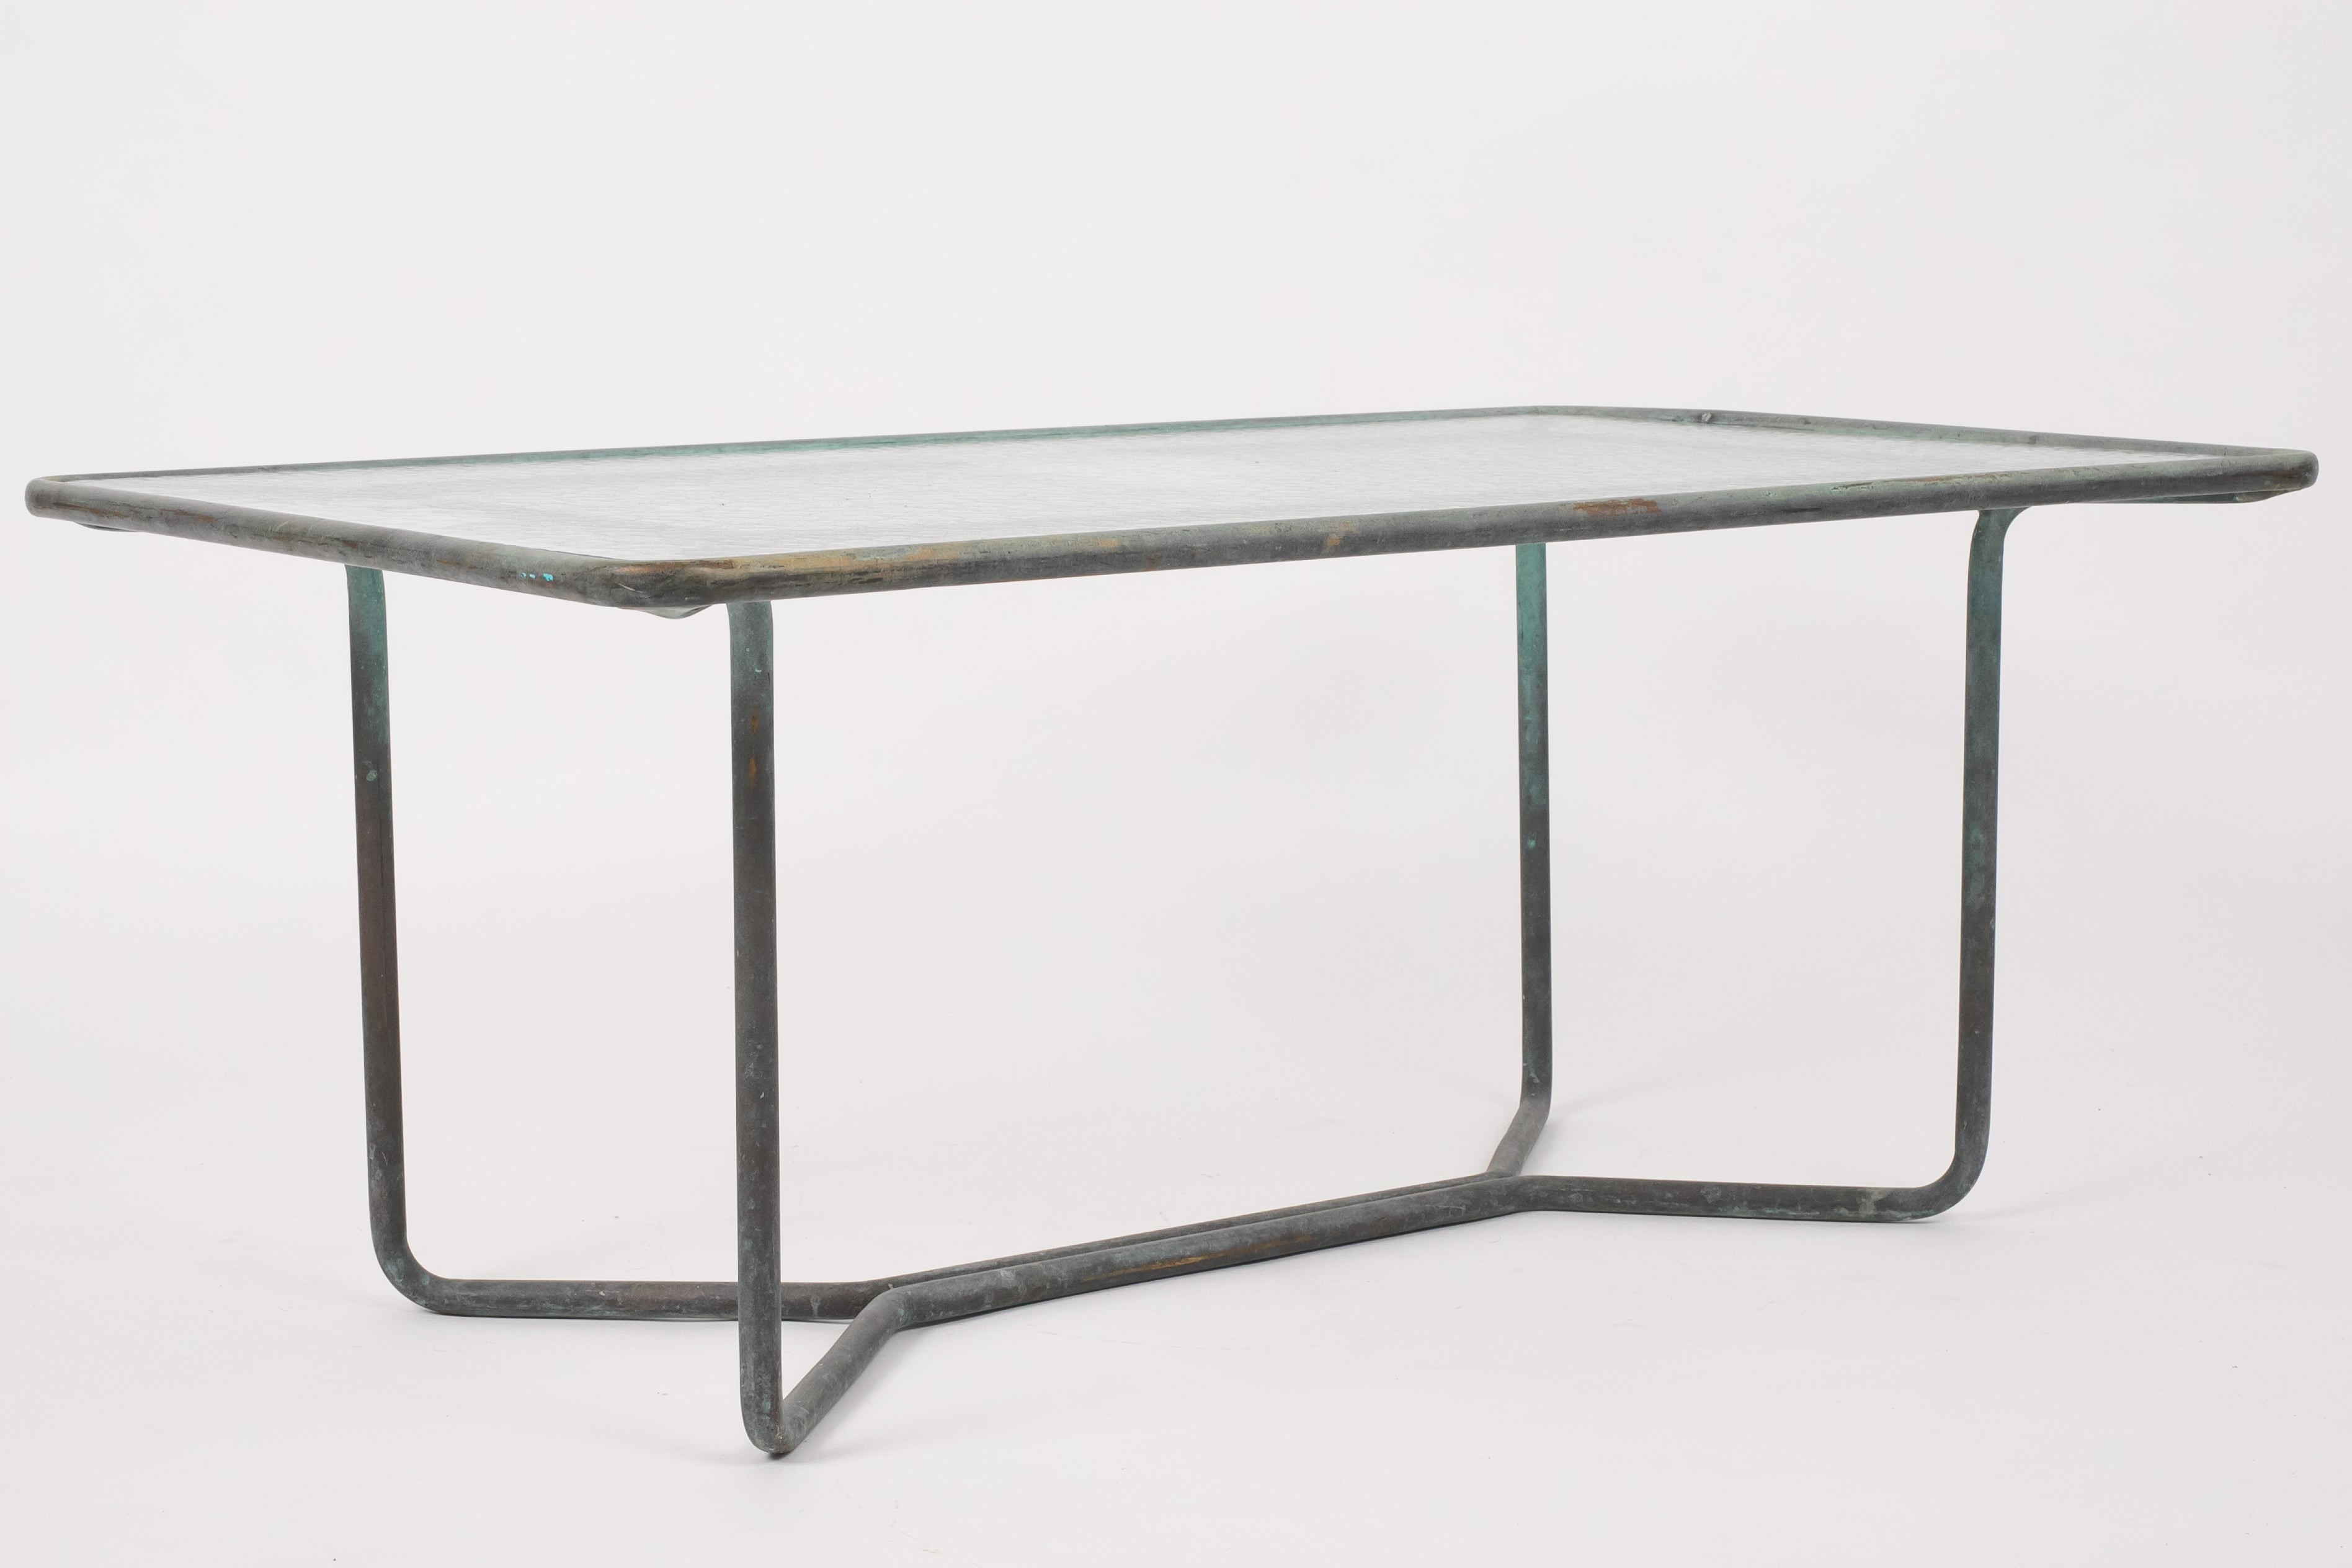 Walter Lamb Rectangular Coffee Table with Hammered Glass Top – Den